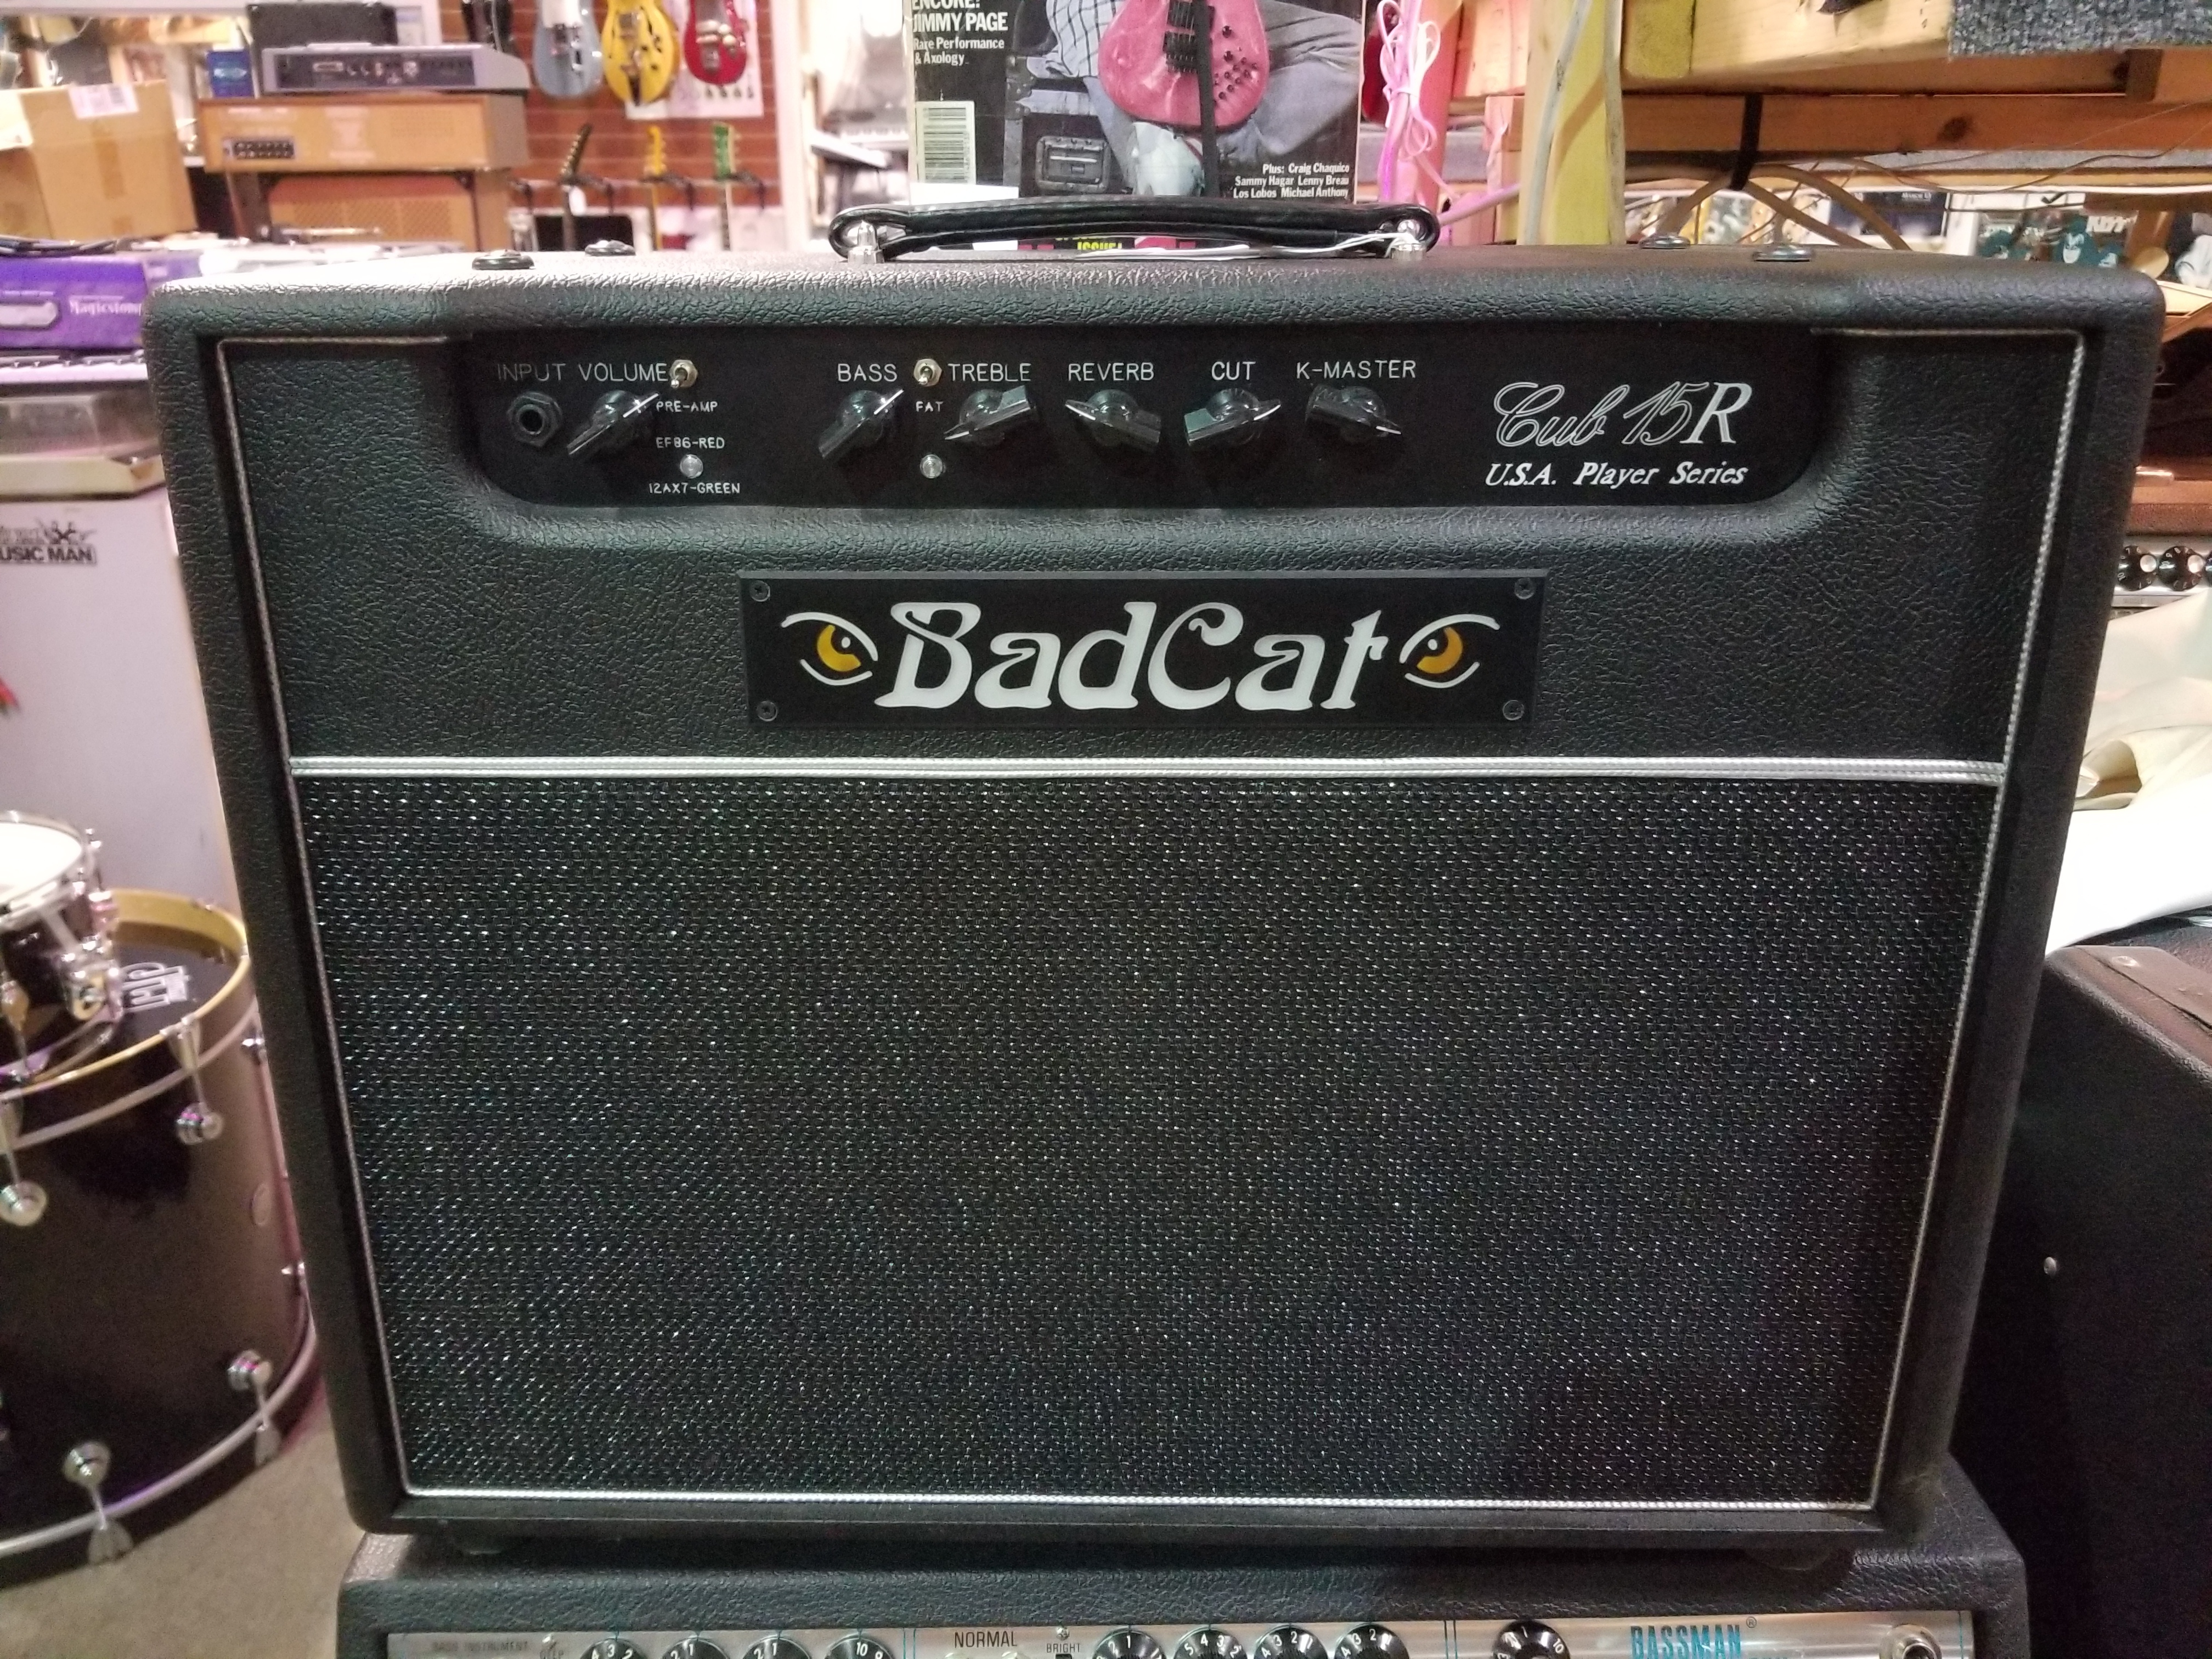 BAD CAT CUB 15R USA Player Series 15-Watt 1x12